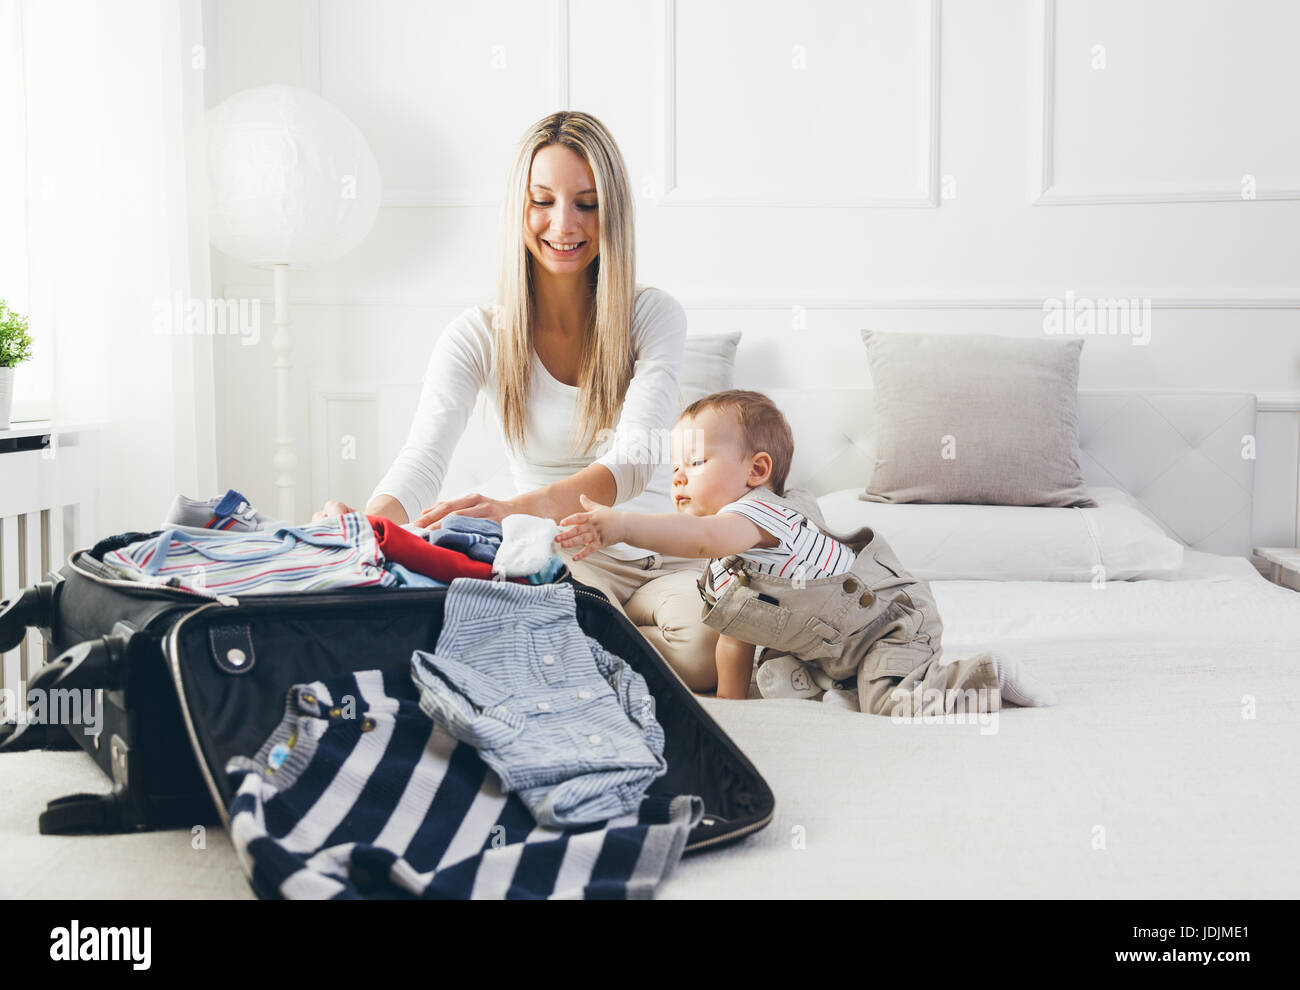 Travelling with kids. Happy mother with her child packing clothes for their holiday - Stock Image